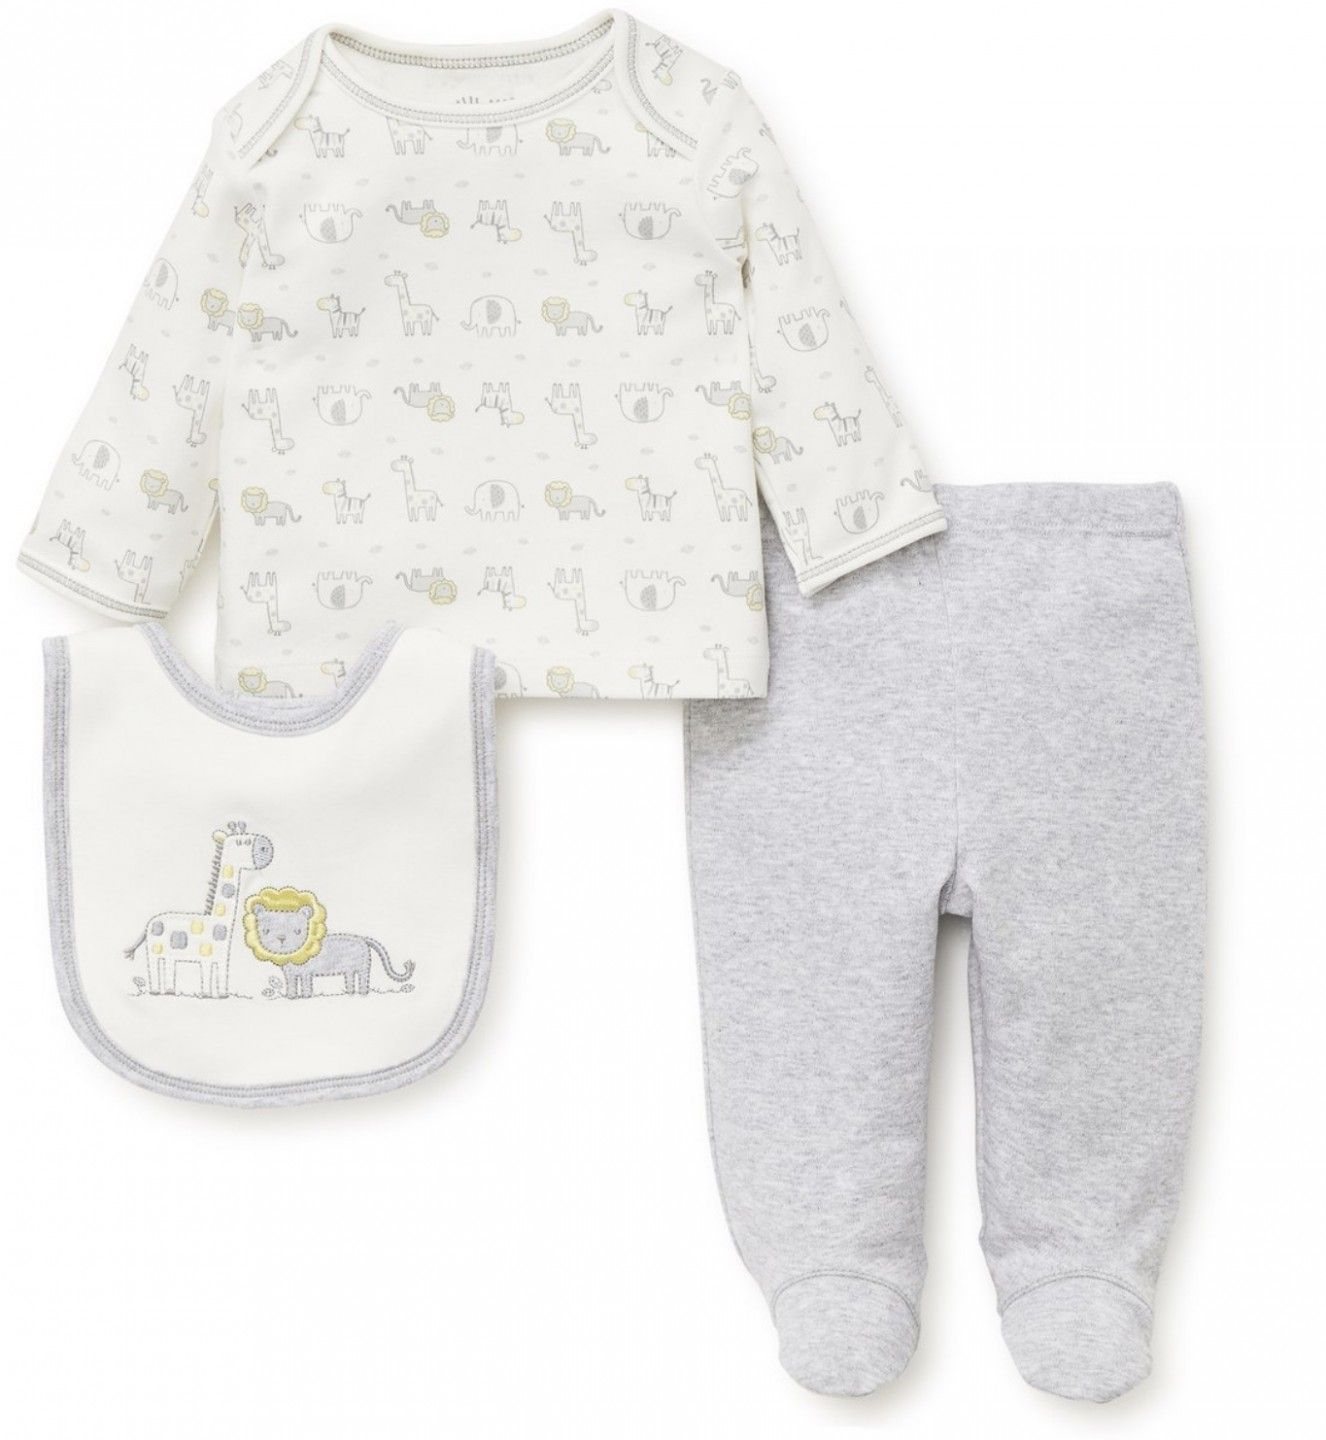 LITTLE ME LAP SHOULDER SET WITH BIB HEATHER GRAY GIRAFFE AND LION